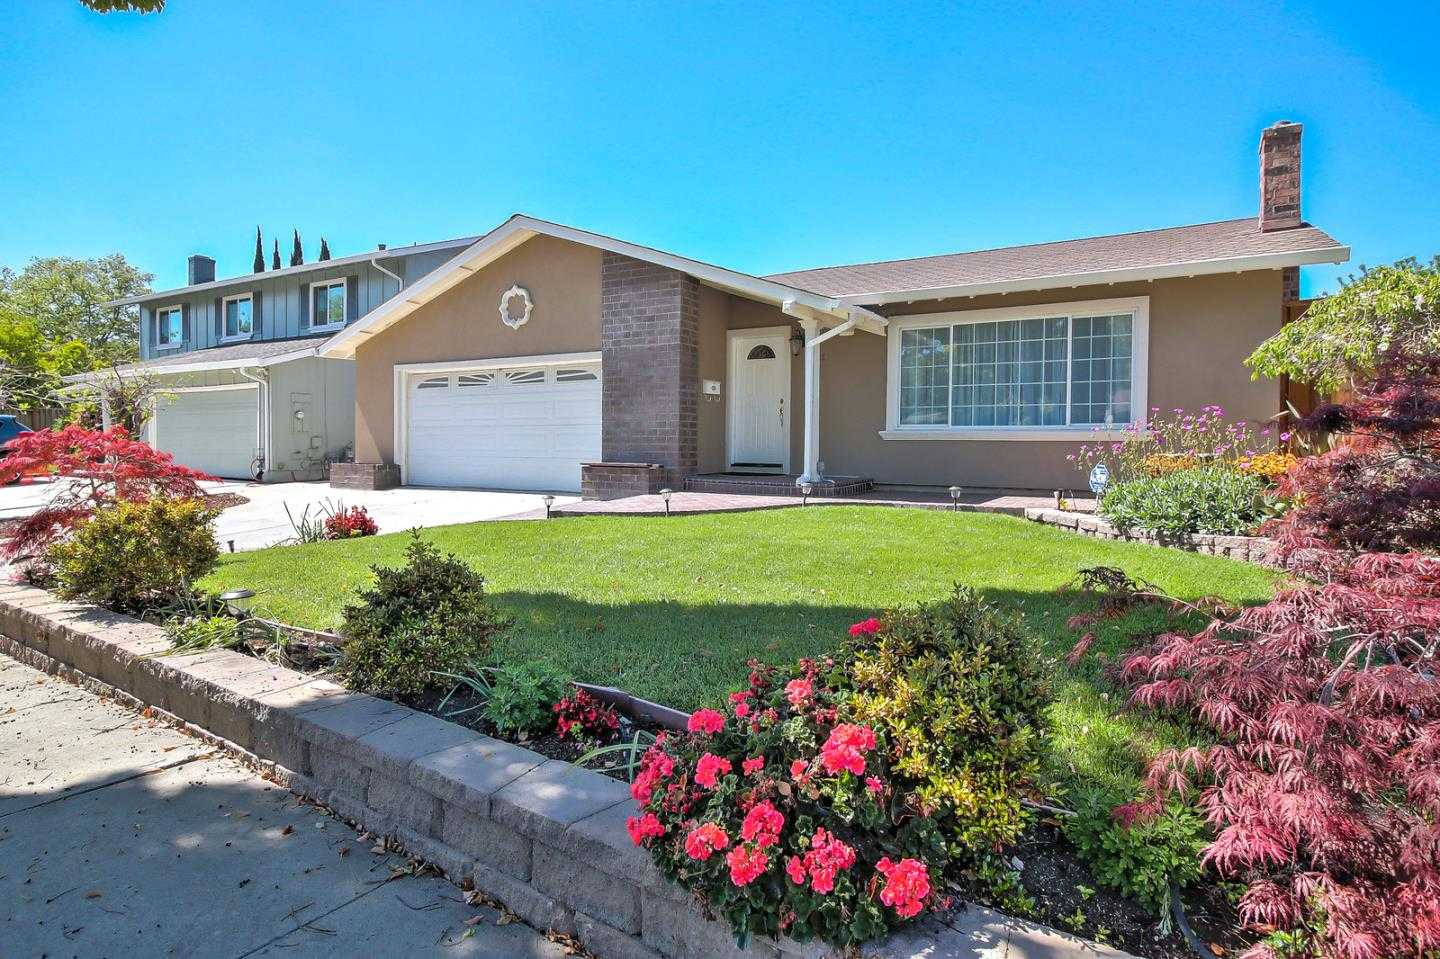 $1,098,000 - 3Br/2Ba -  for Sale in San Jose